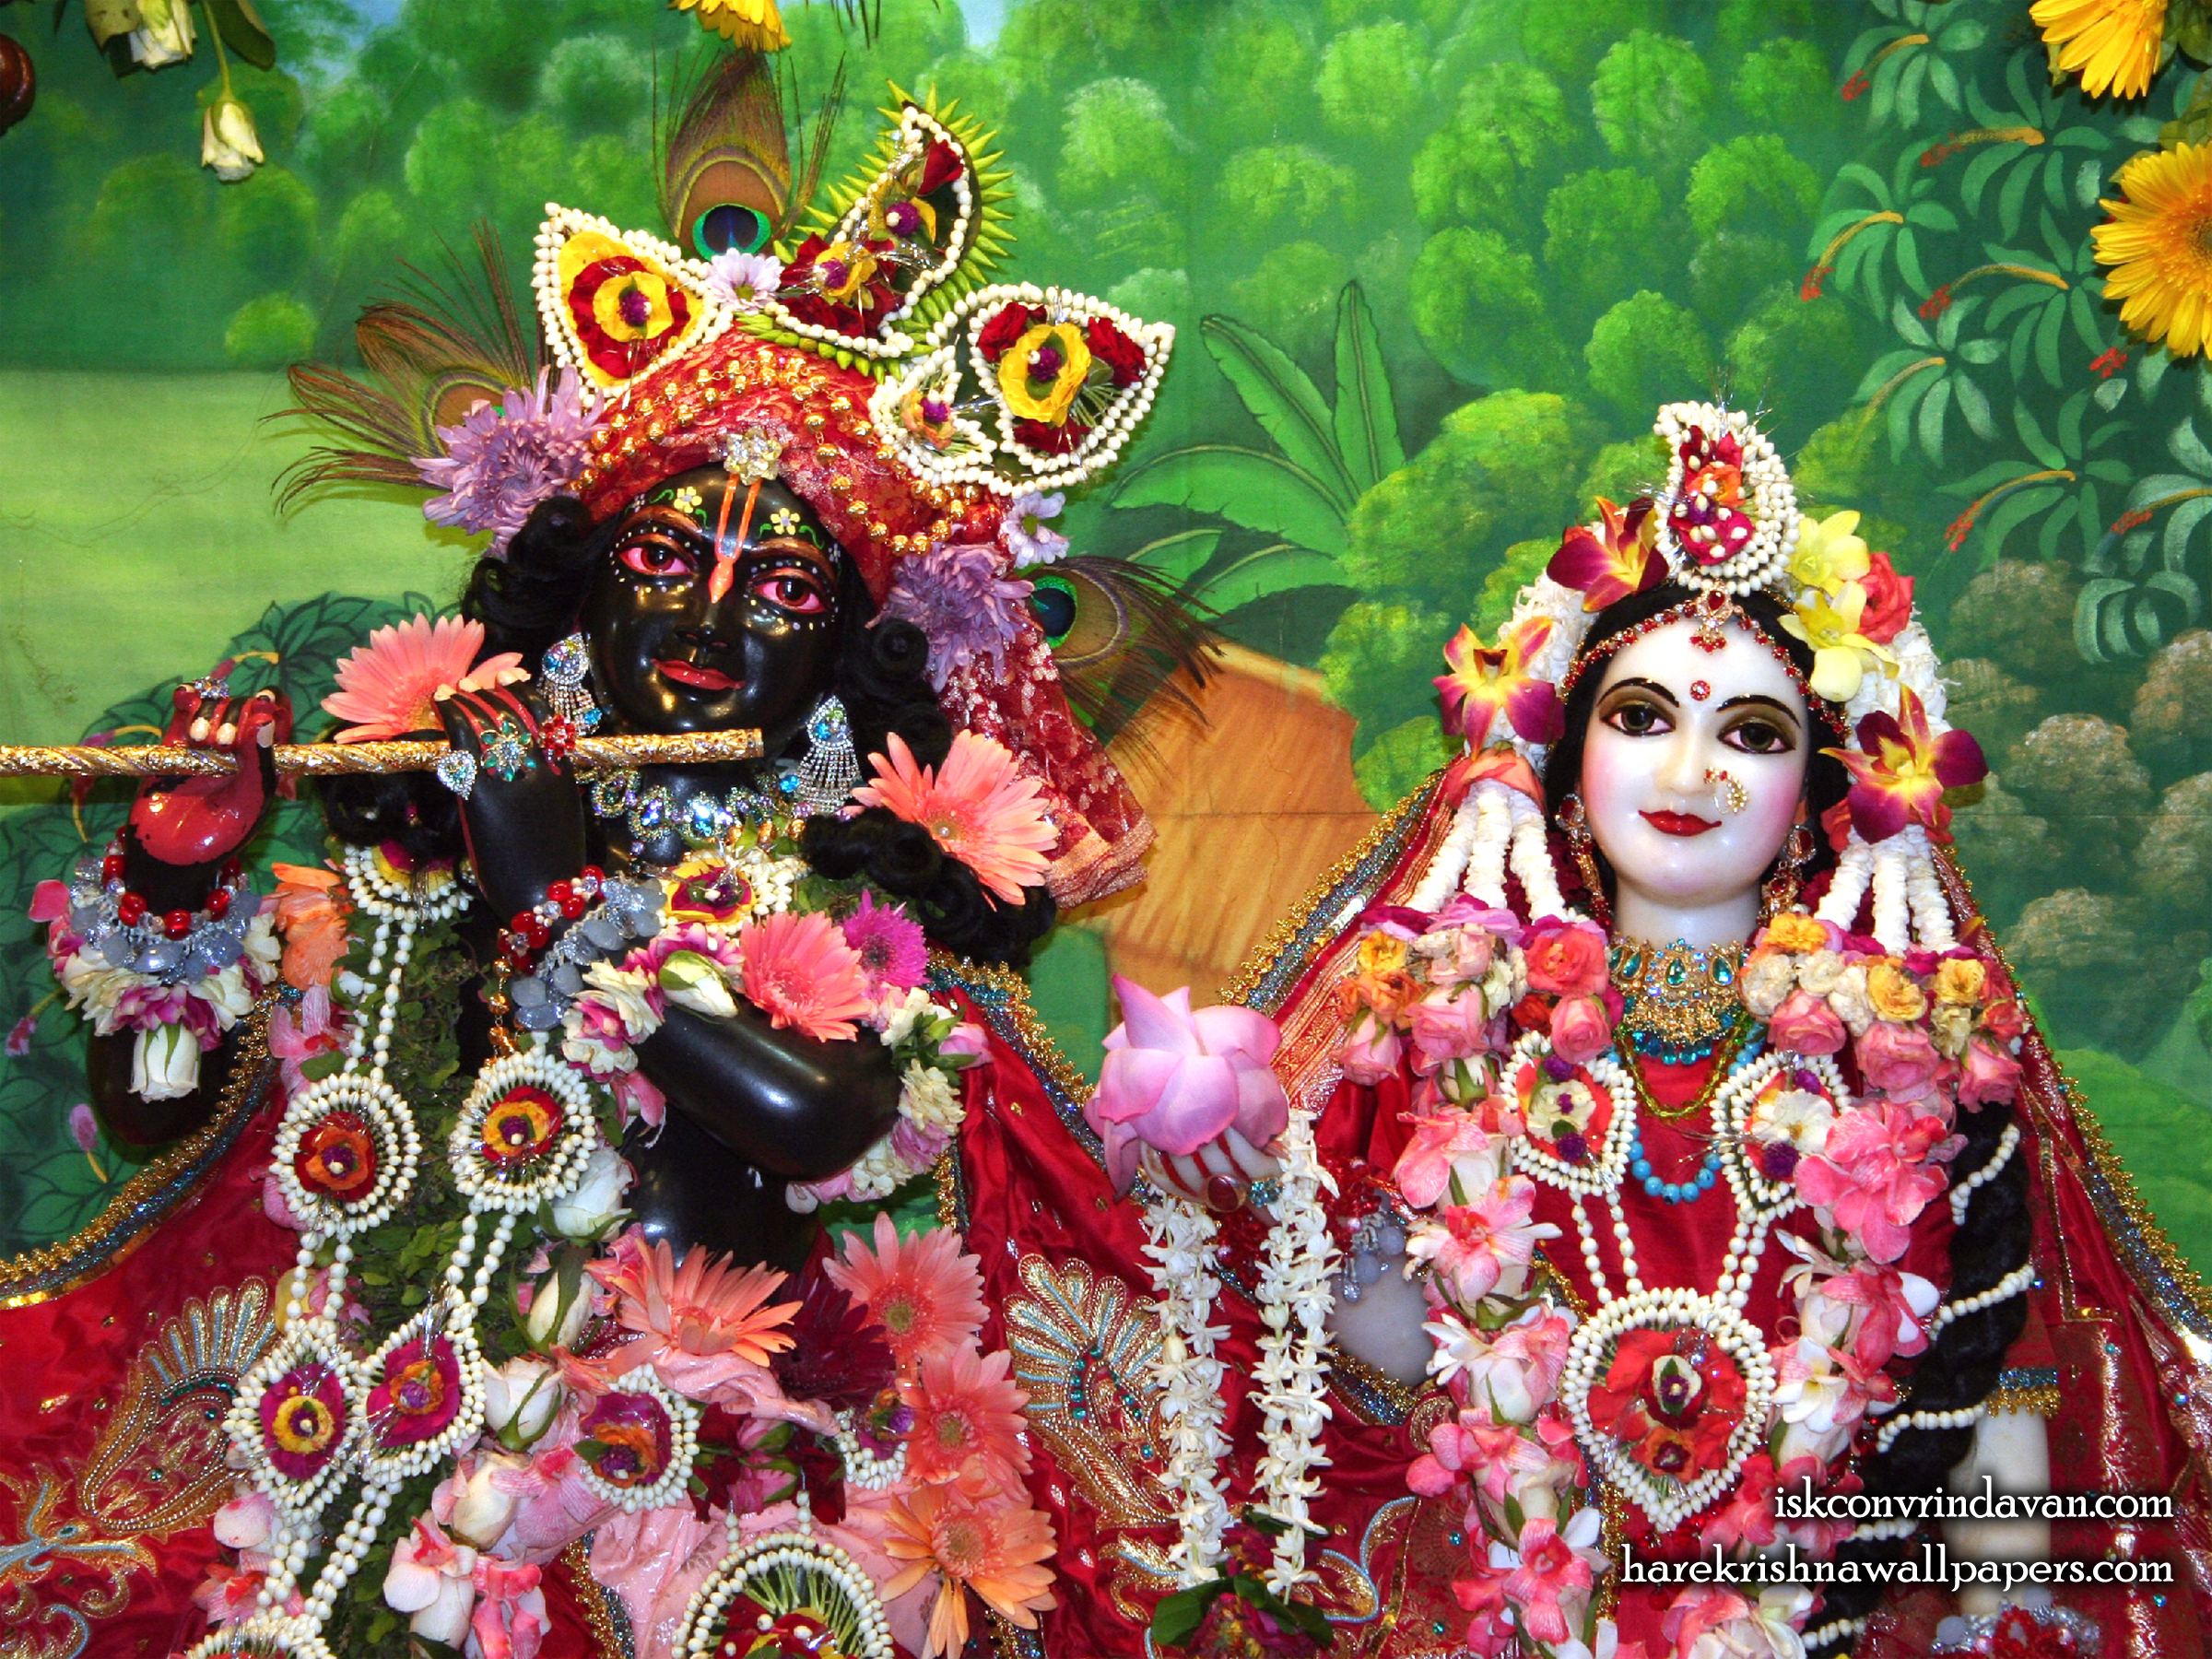 Sri Sri Radha Shyamsundar Close up Wallpaper (012) Size 2400x1800 Download